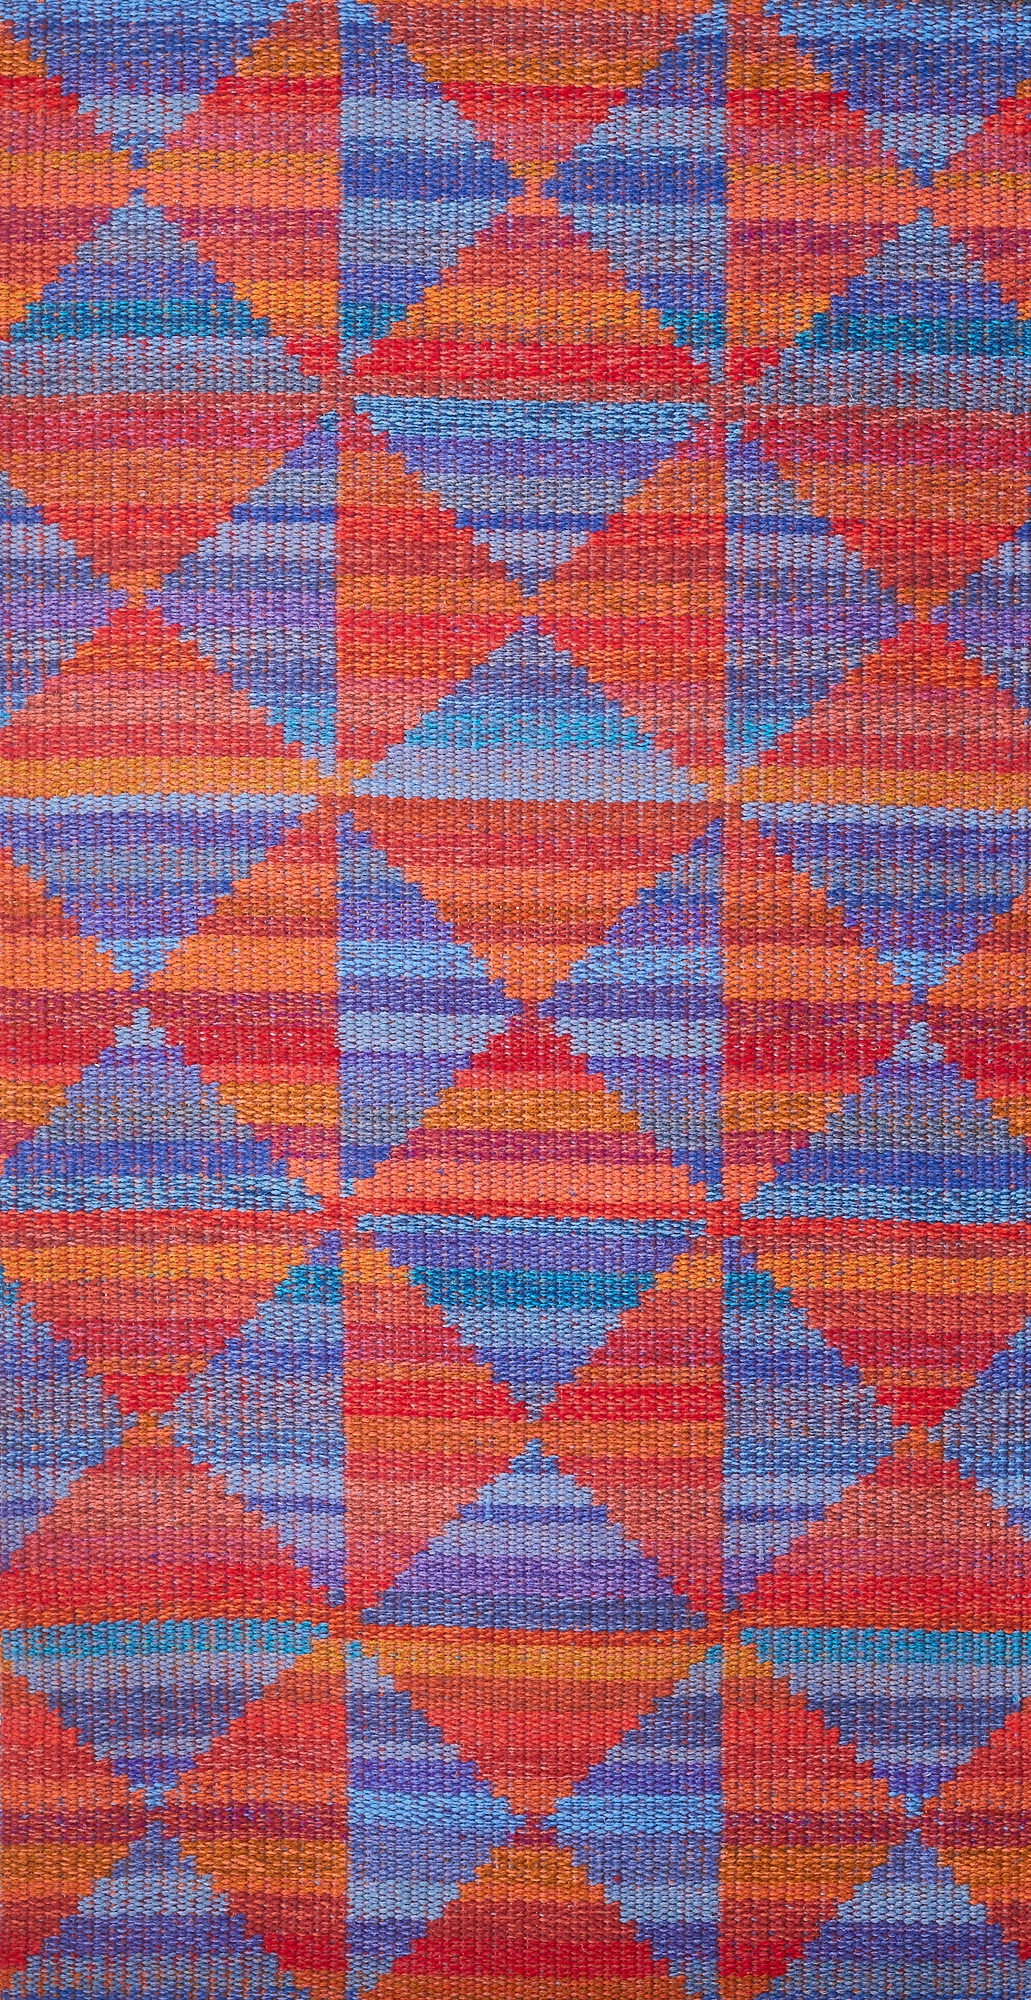 JJ0139 Wool and Linen. 112 x 206 cm.